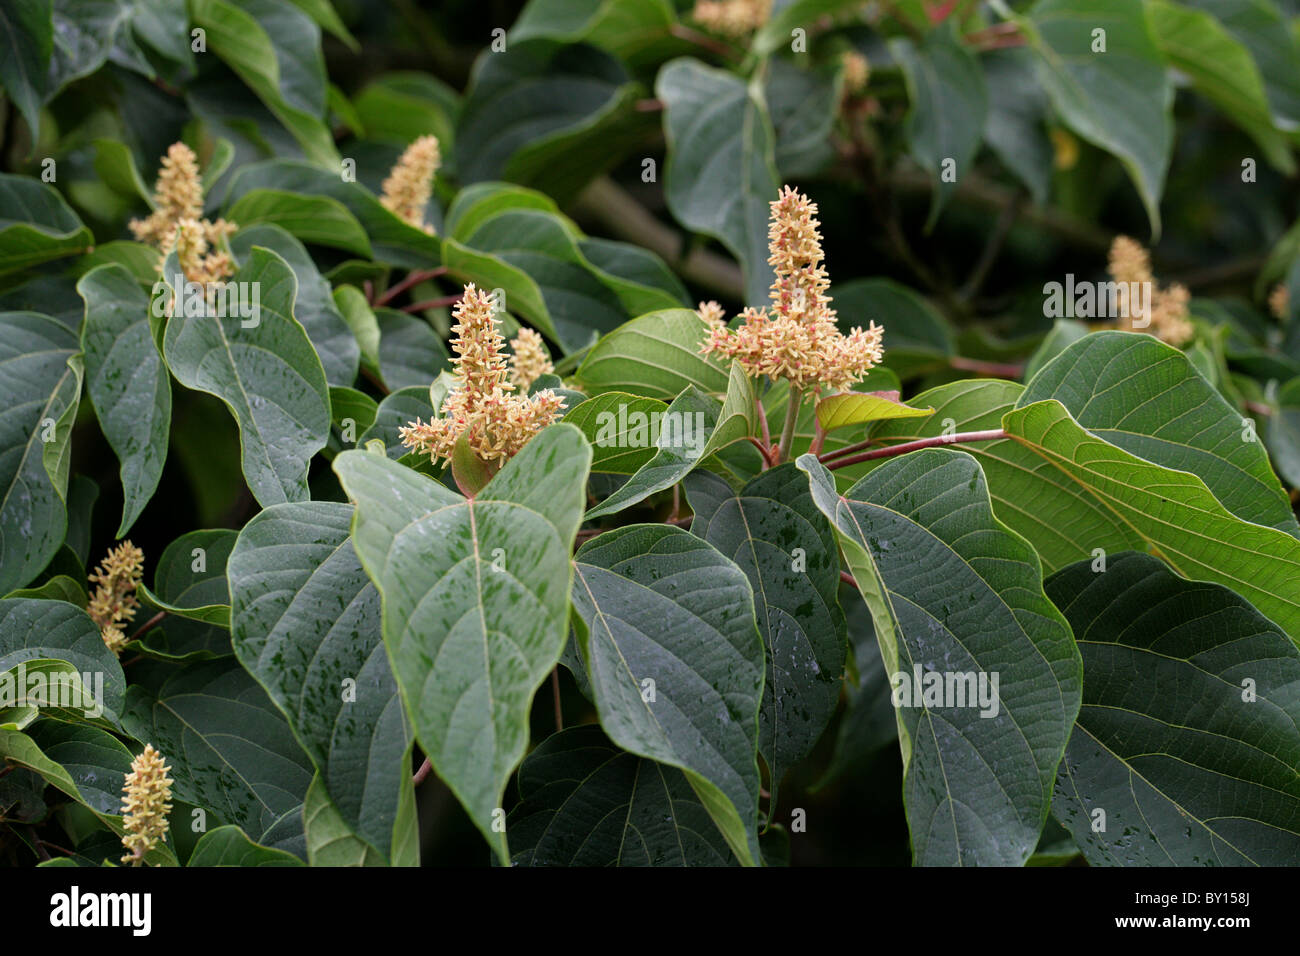 Food Wrapper Plant, Japanese Mallotus, Mallotus japonicus, Euphorbiaceae, Japan, Taiwan, S. China to Temperate E. - Stock Image